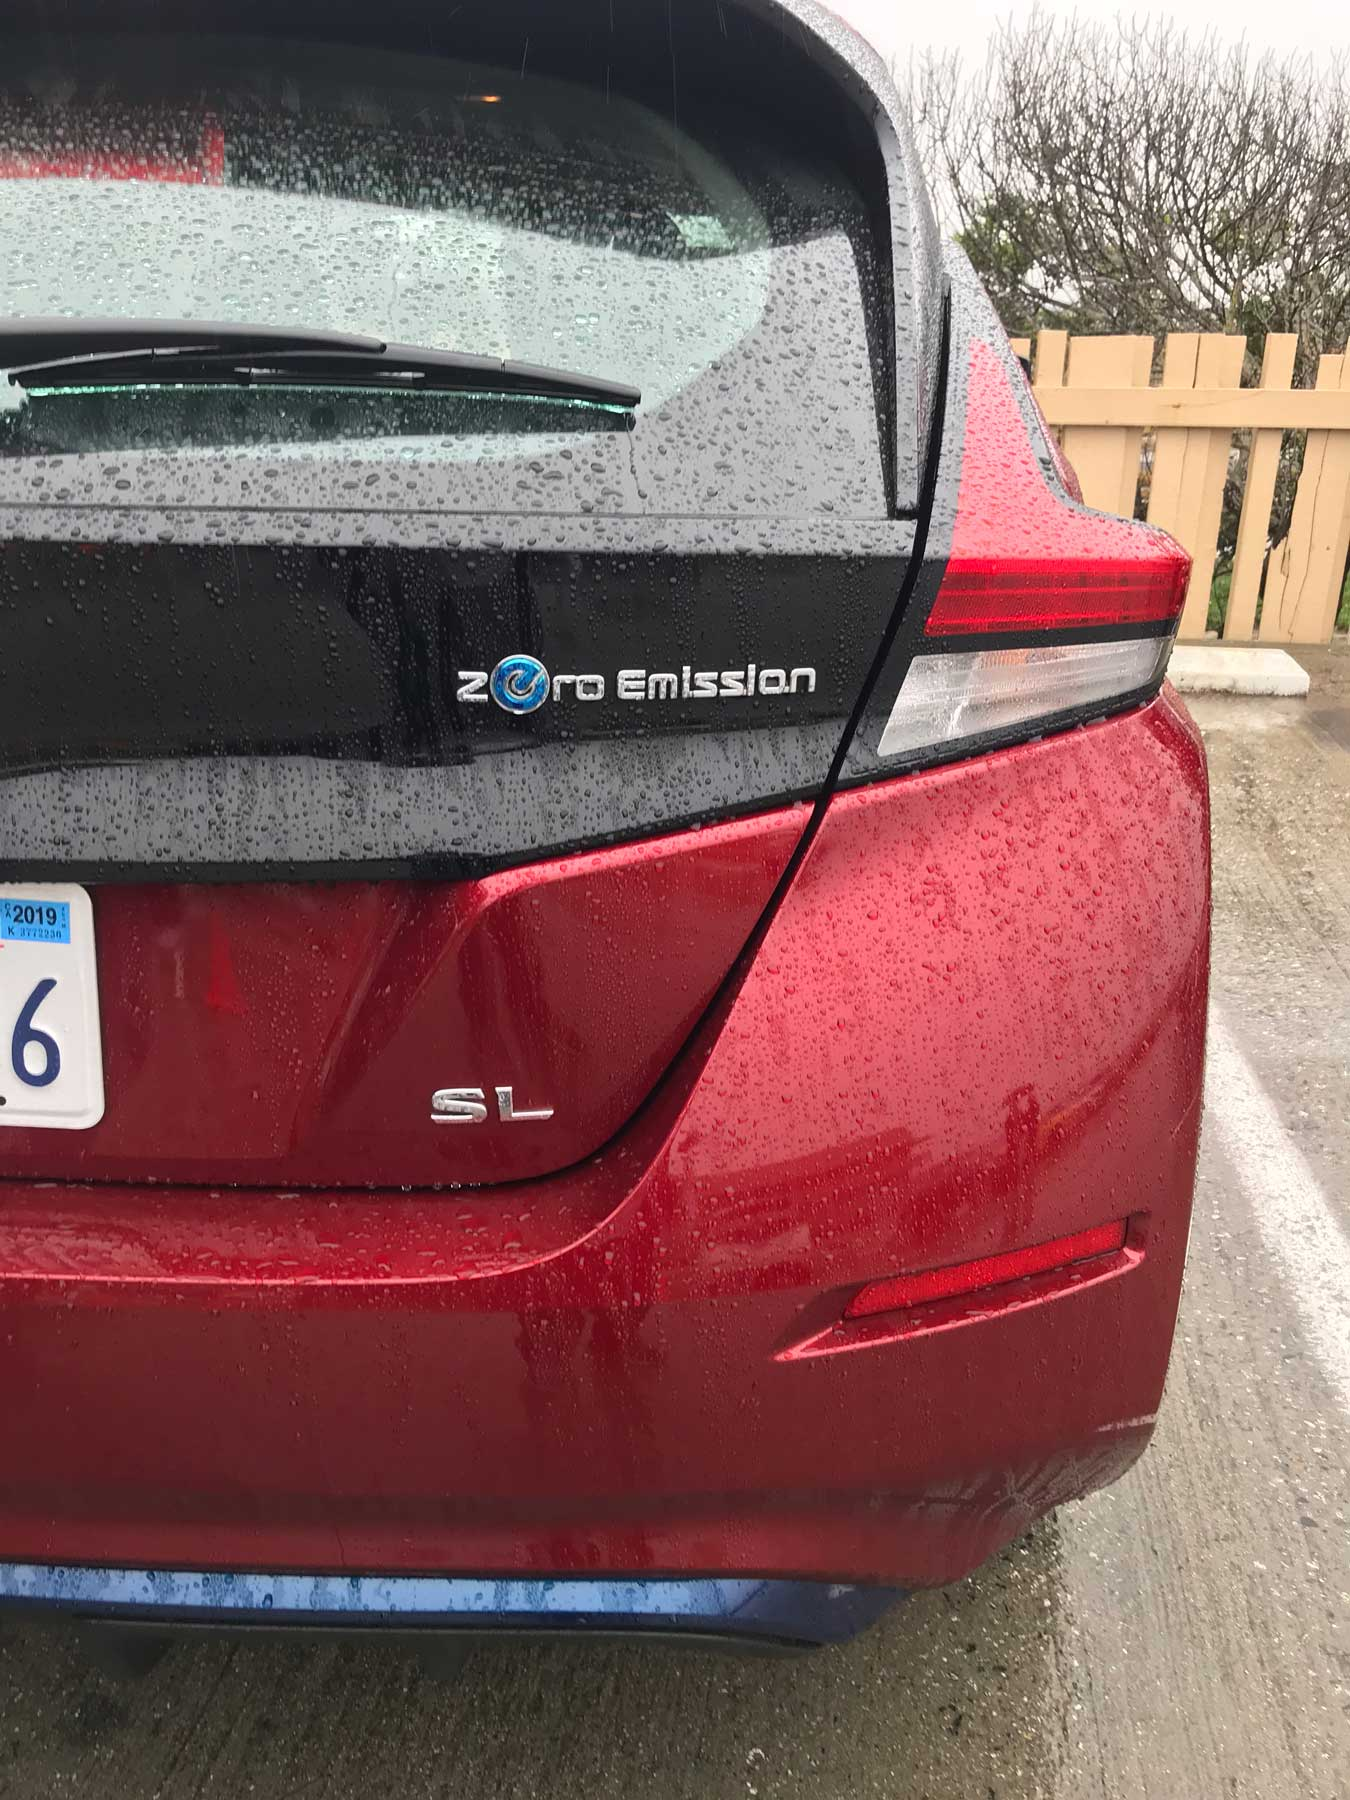 The zero-emission brag of an electric car including the tested Nissan Leaf